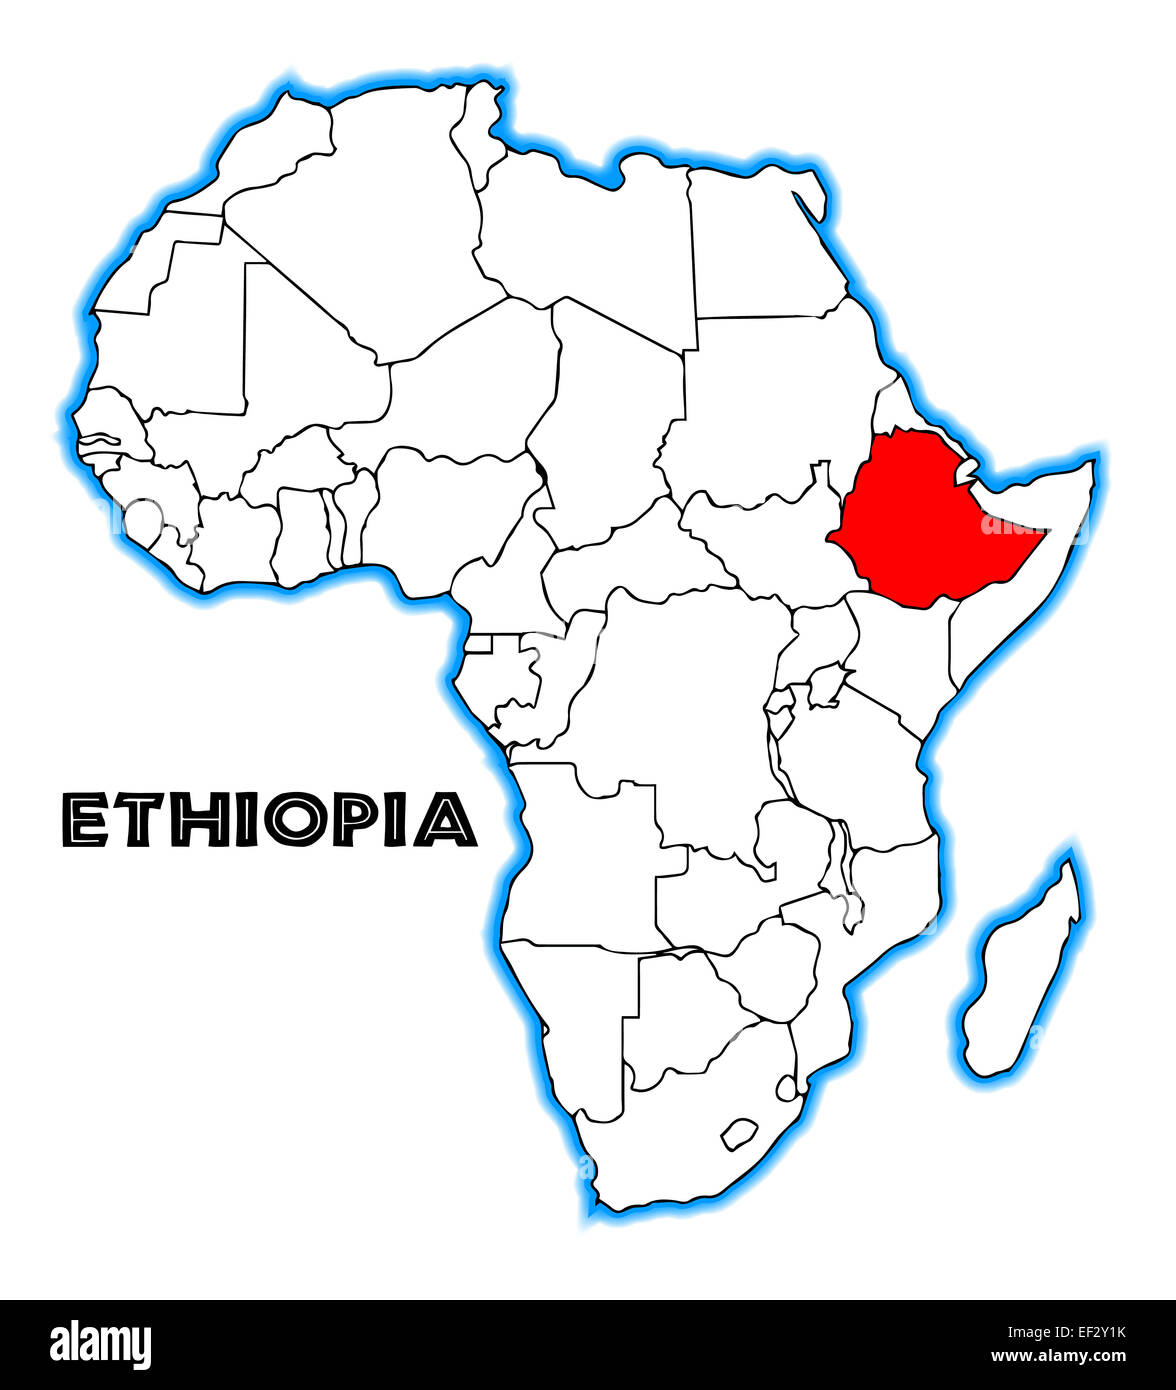 africa map with ethiopia